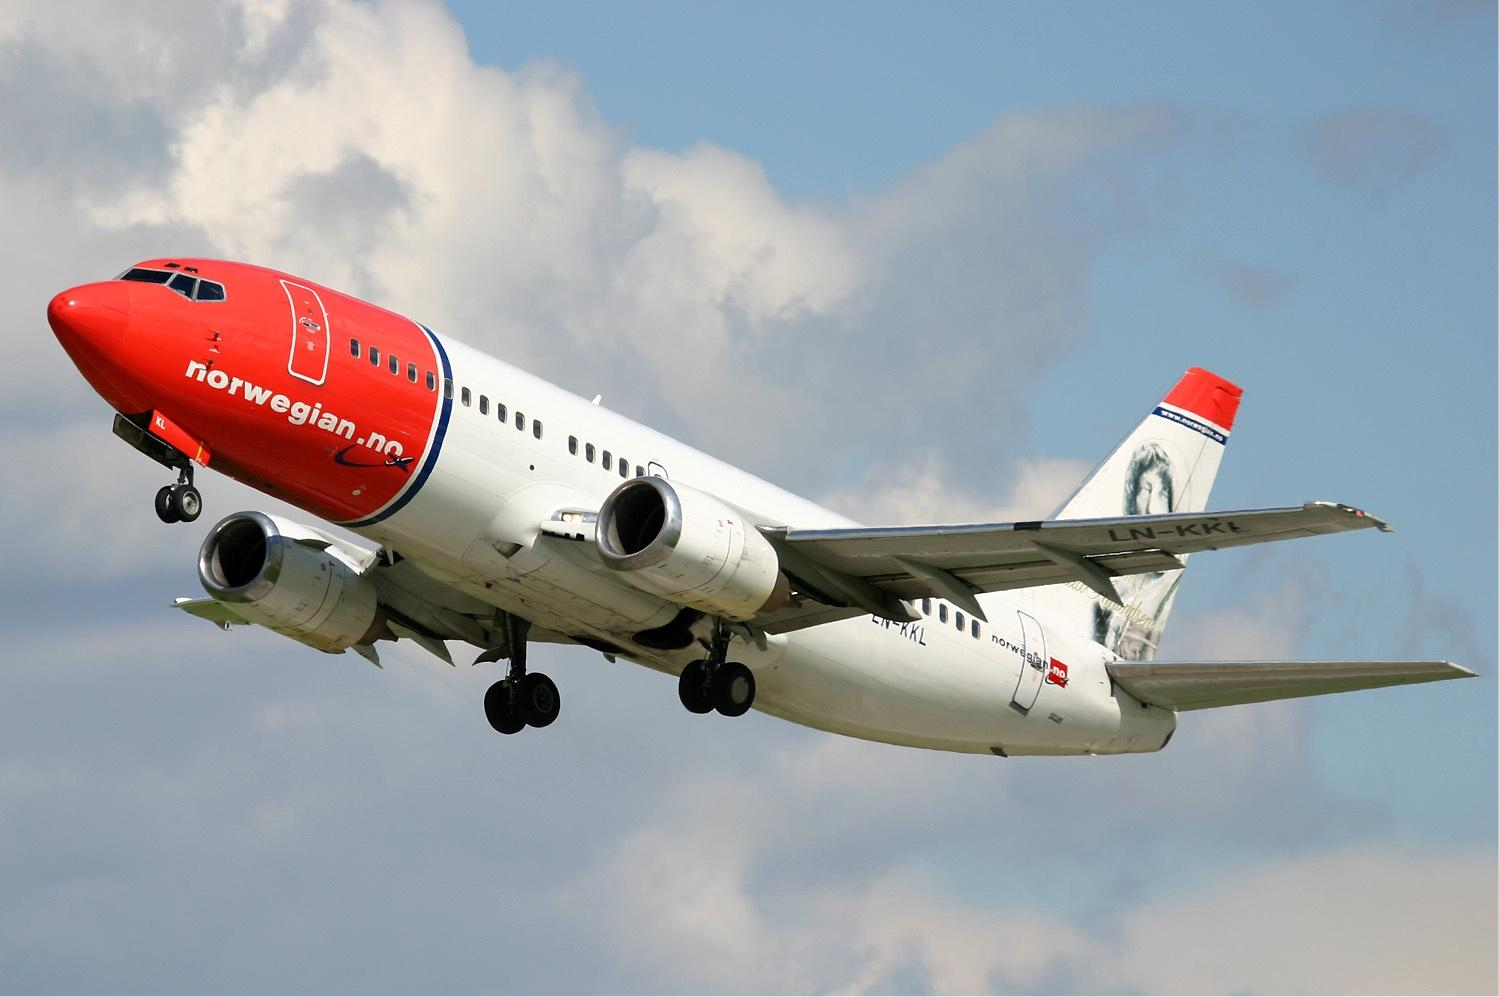 Norwegian Air Shuttle Launches Budapest - London Flight